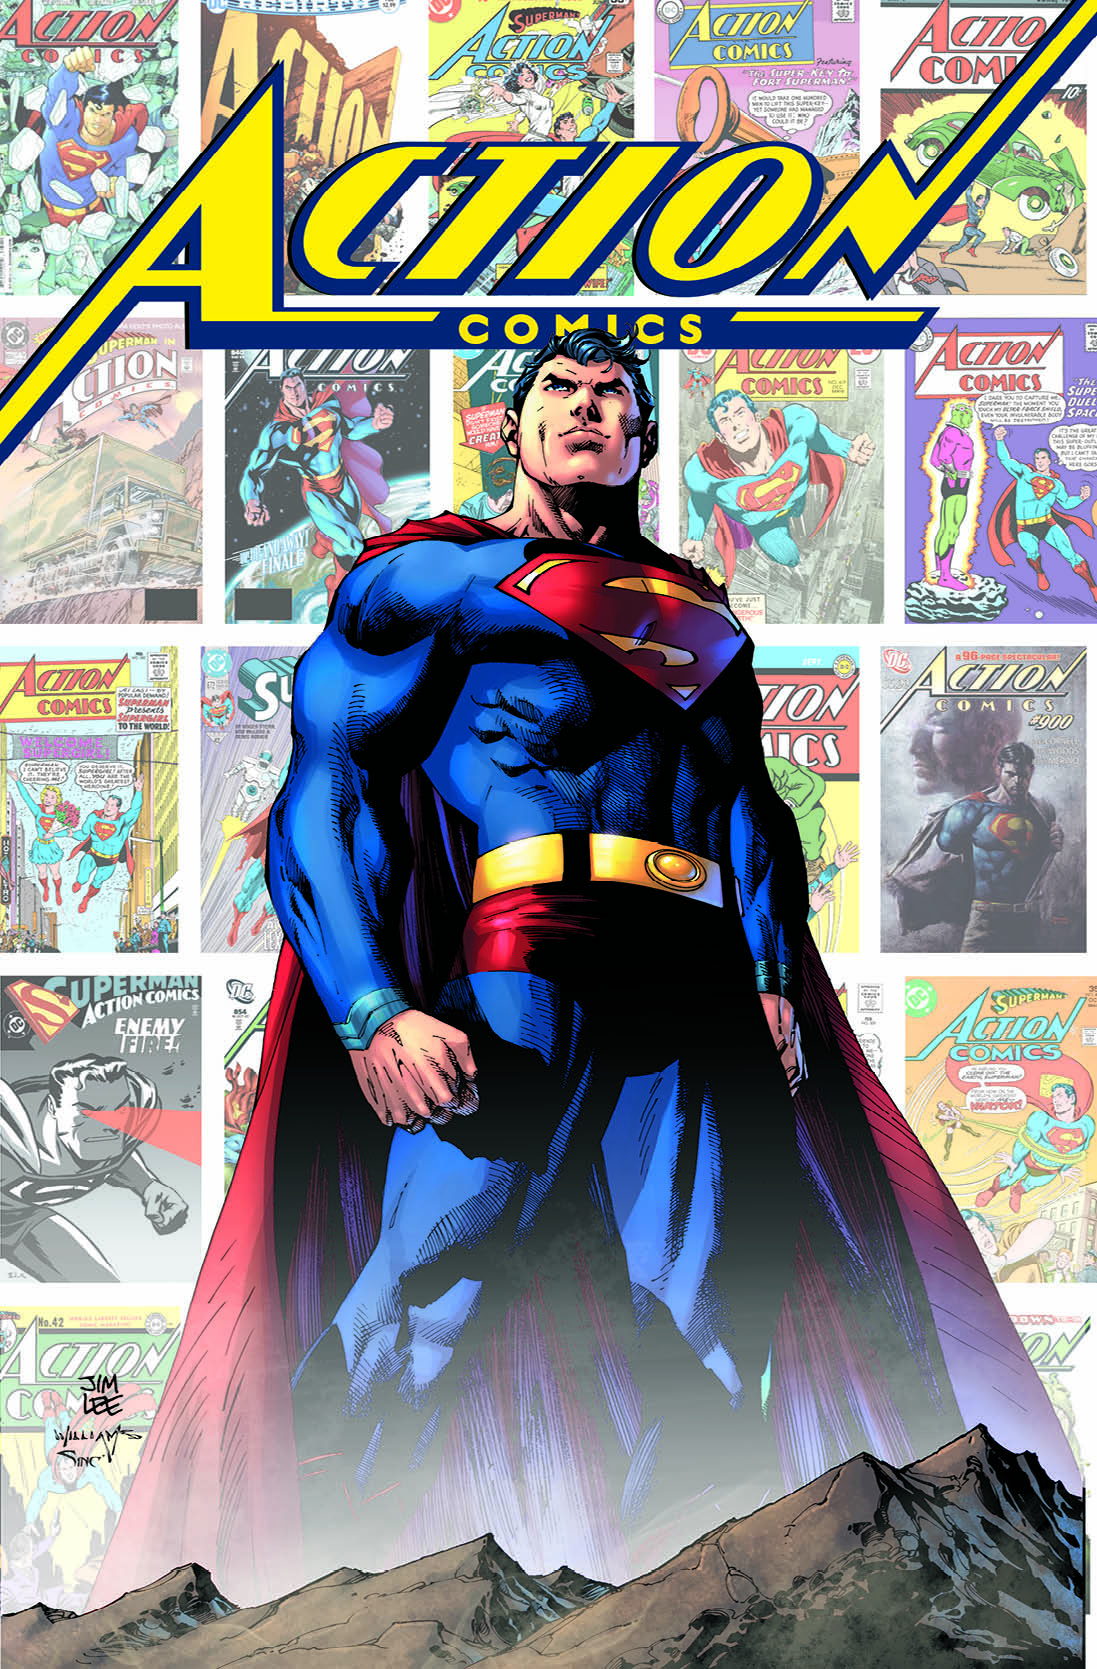 Action Comics 1000 80 Years of Superman.jpg